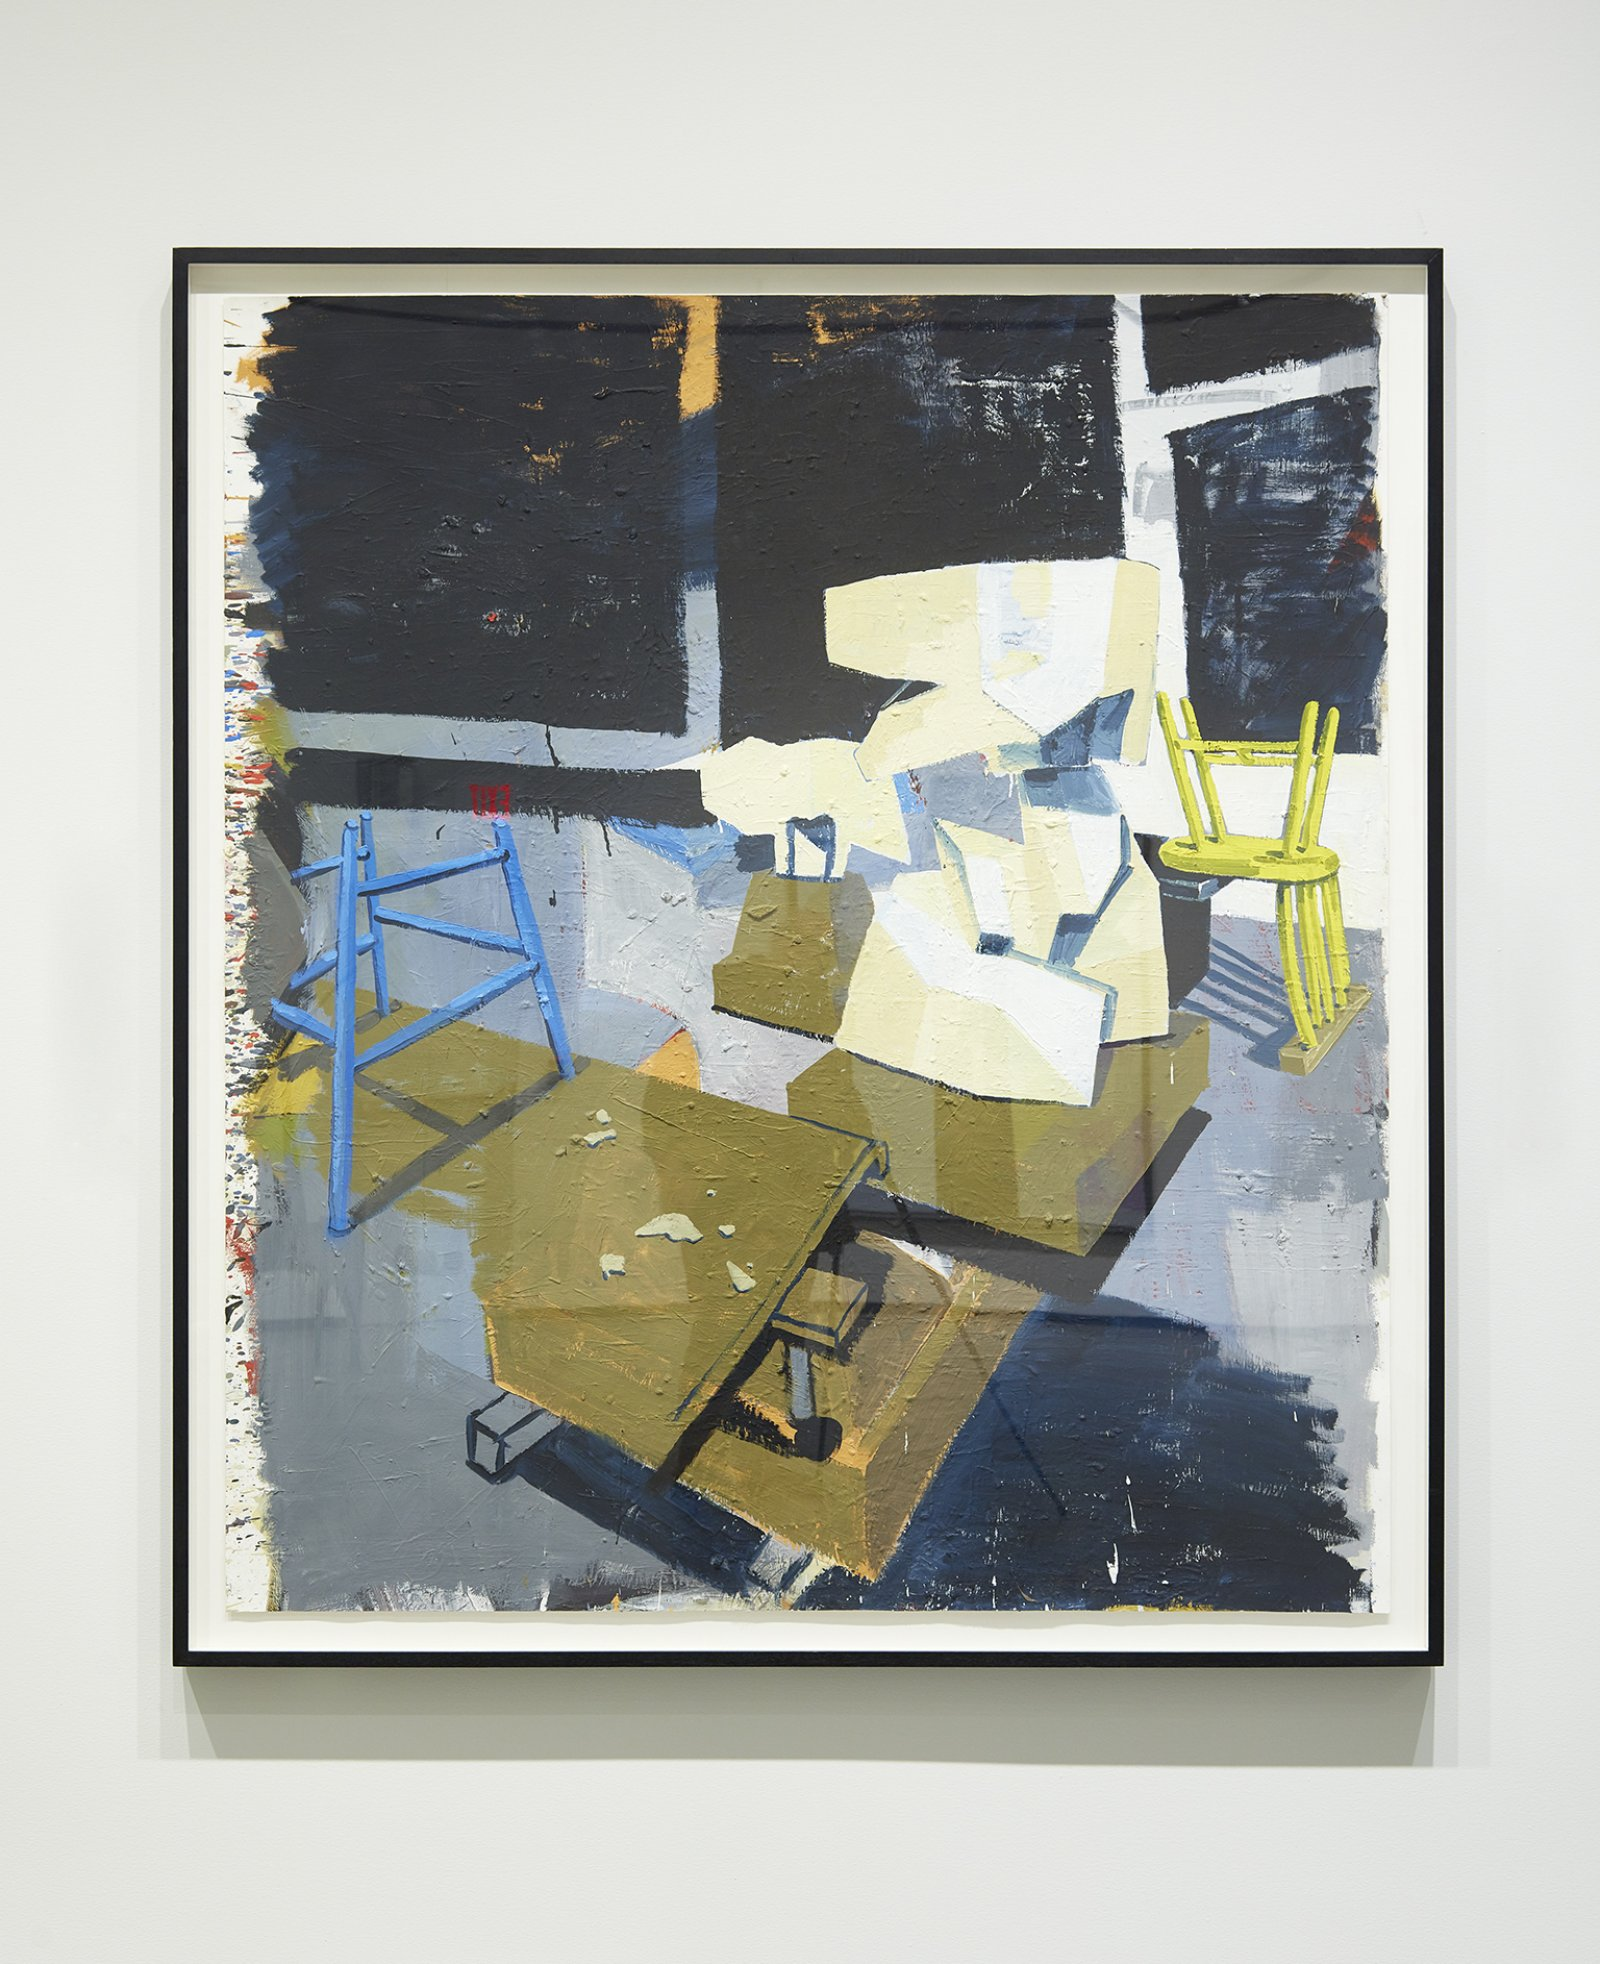 Damian Moppett, Two Plaster Sculptures in Studio with Chairs, 2007, oil on paper, 66 x 59 in. (168 x 149 cm). Installation view, Every Story Has Two Sides, Art Gallery of Alberta, Edmonton, 2016 by Damian Moppett